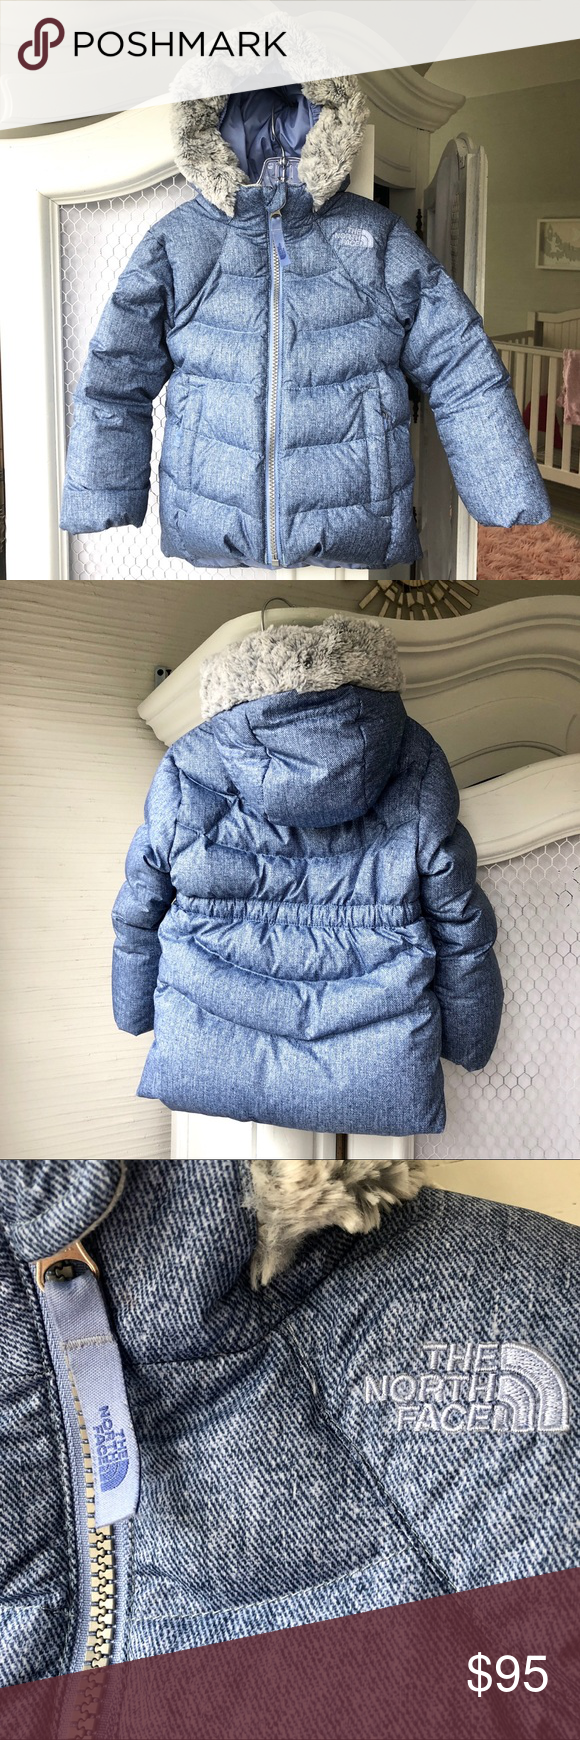 NORTH FACE WARM GOOSE DOWN PUFFER JACKET W/ HOOD Toddler